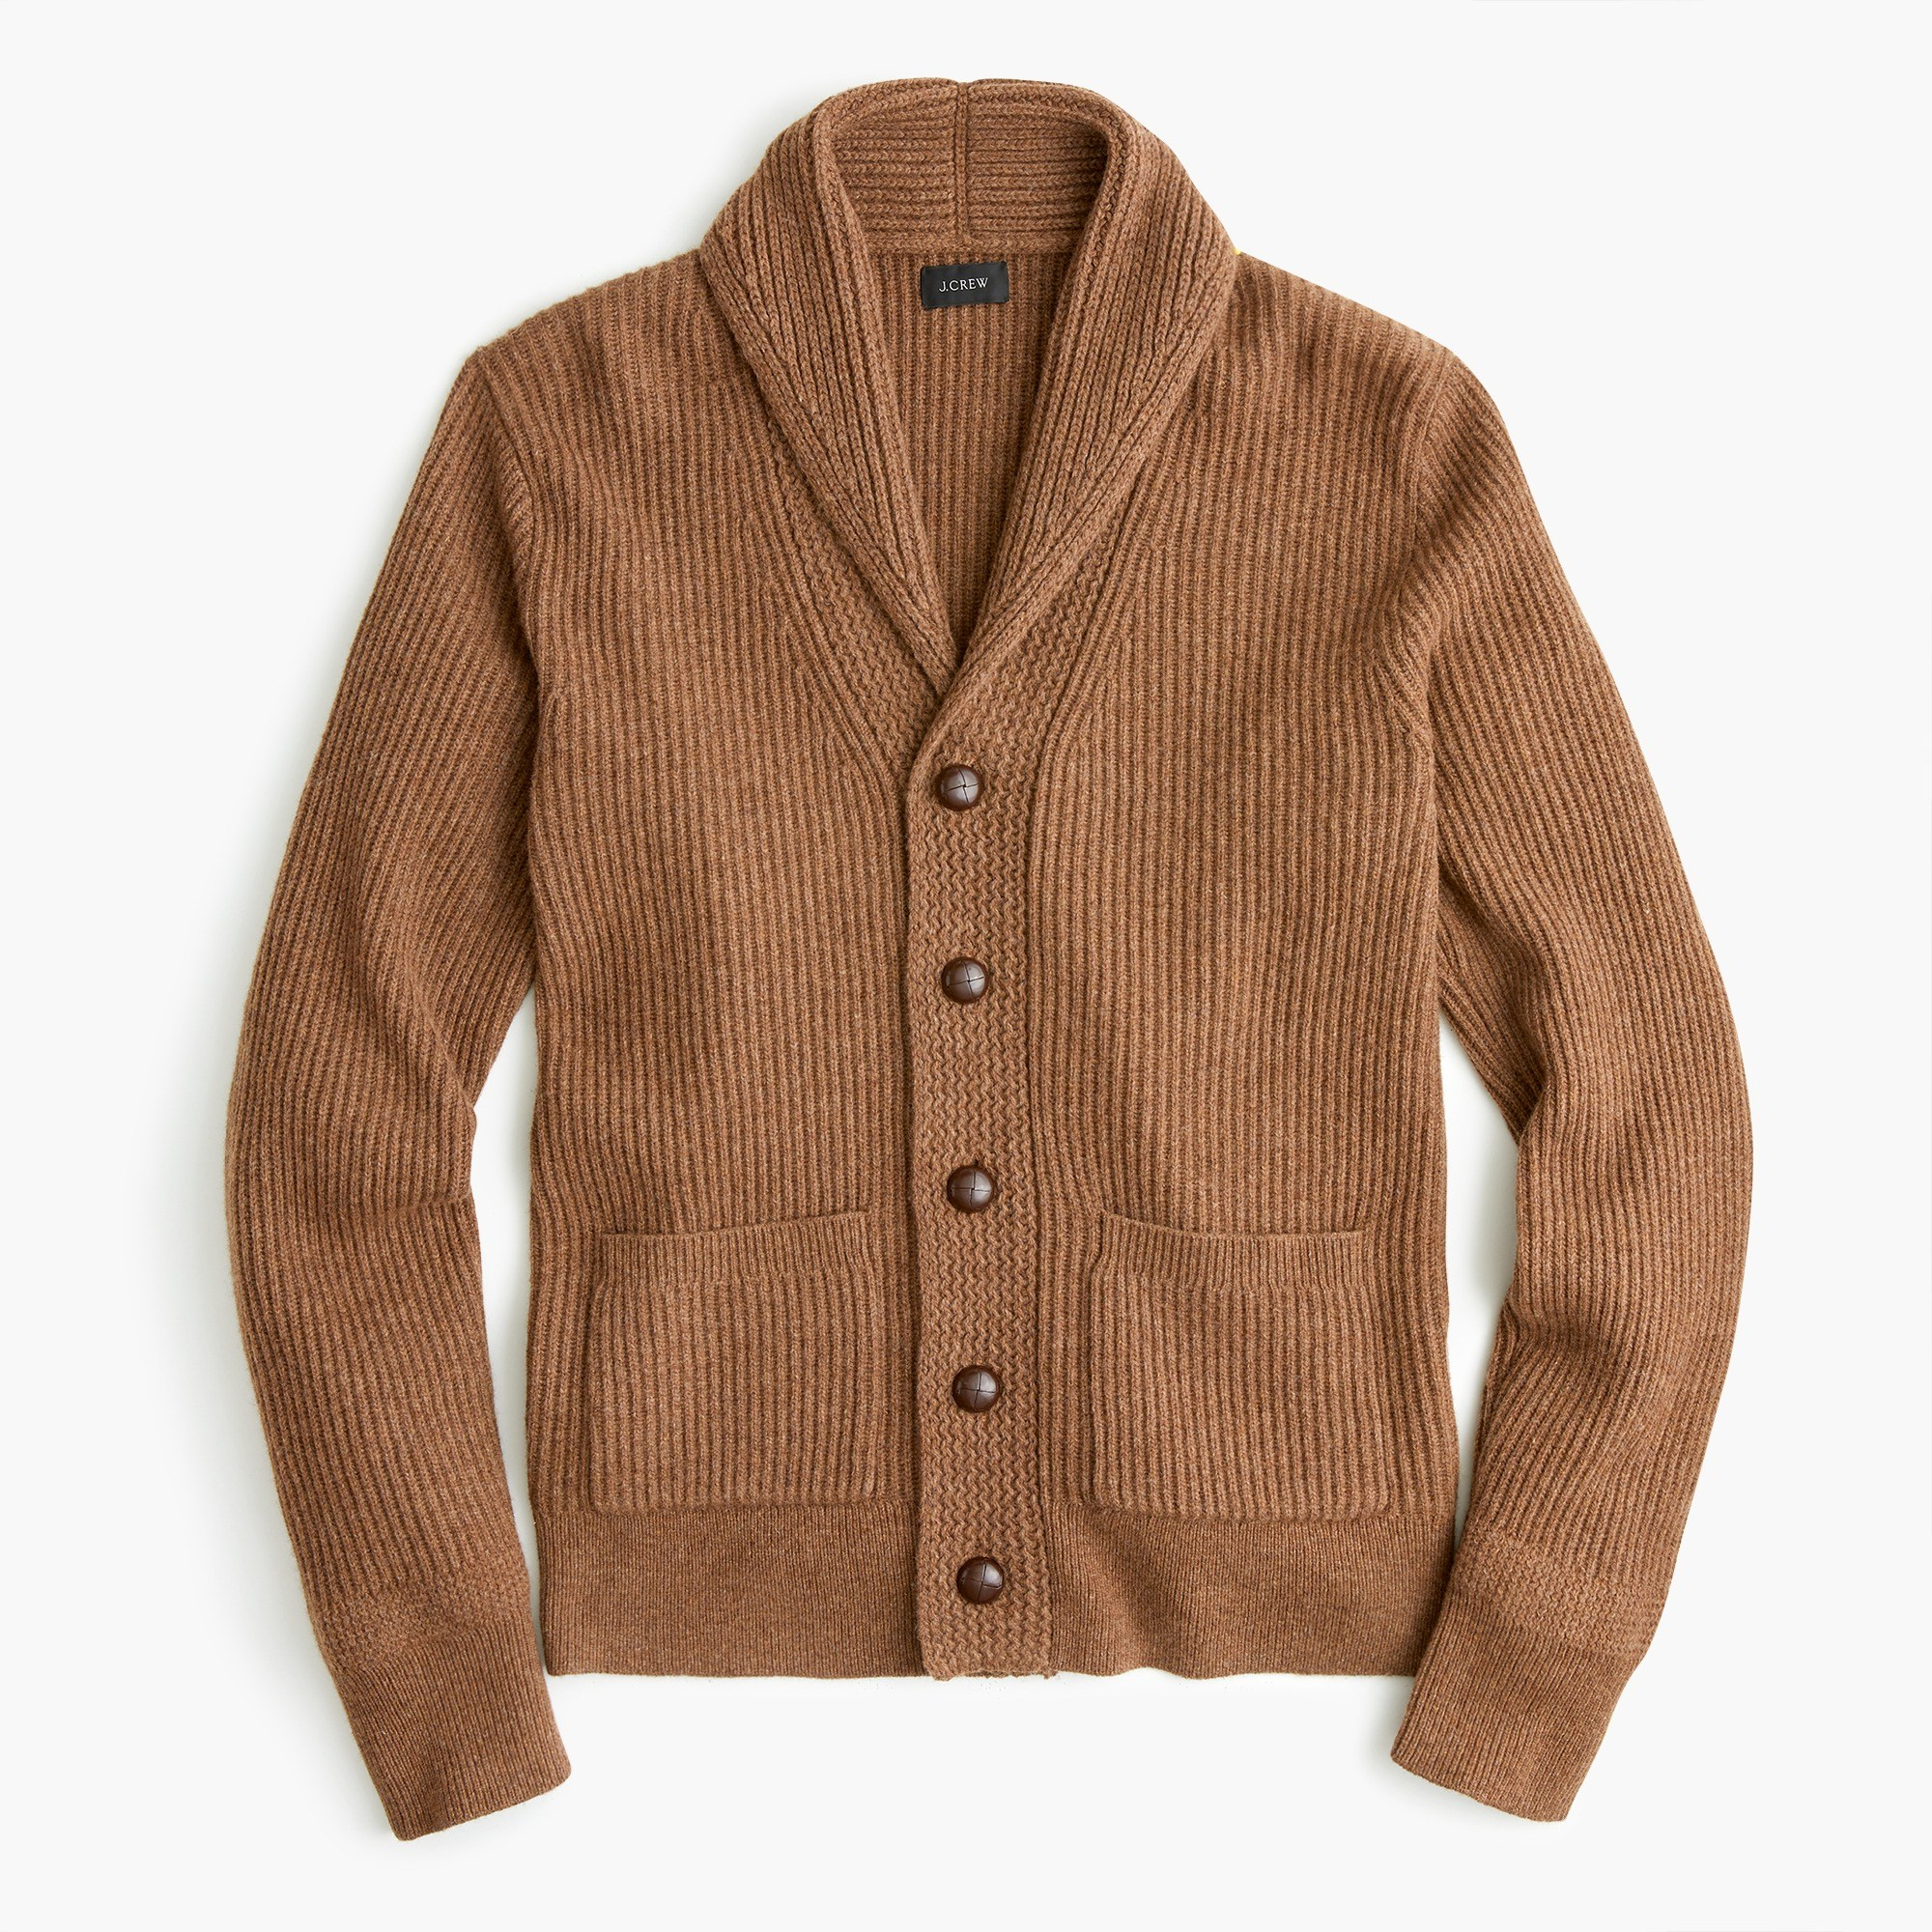 Rugged merino wool shawl-collar cardigan sweater : Men cardigan | J.Crew